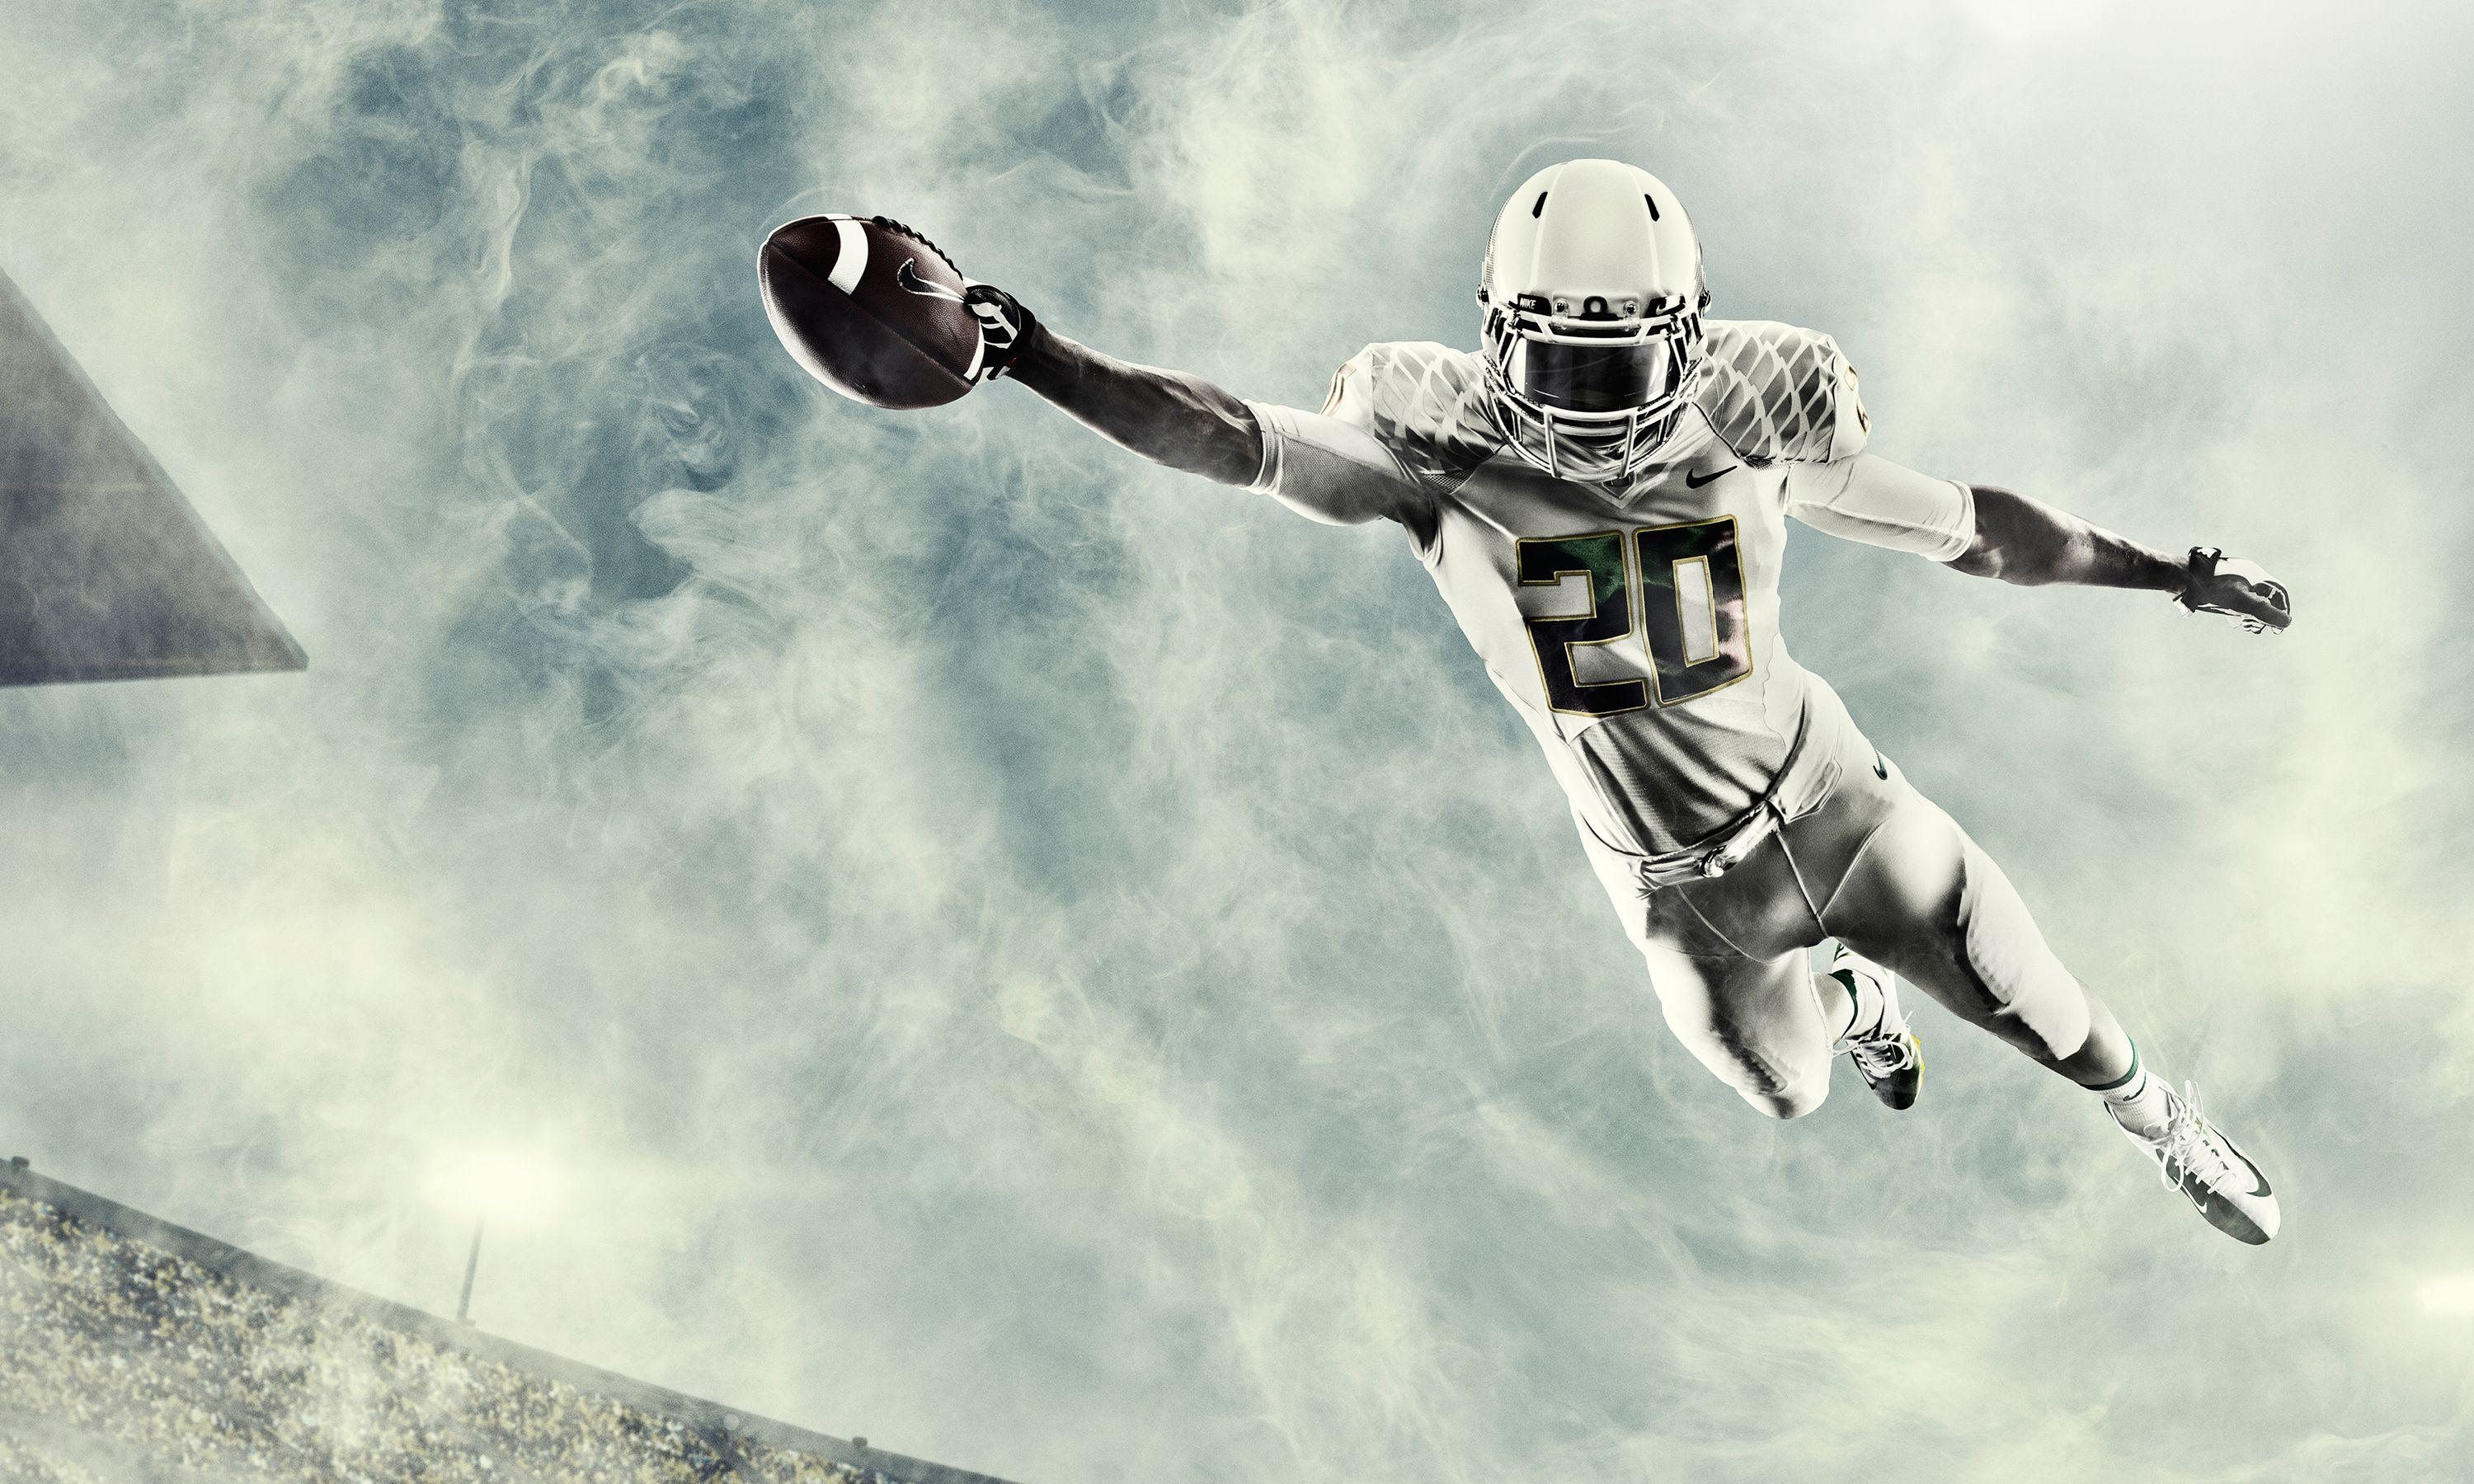 Download free college football wallpapers for your mobile phone.